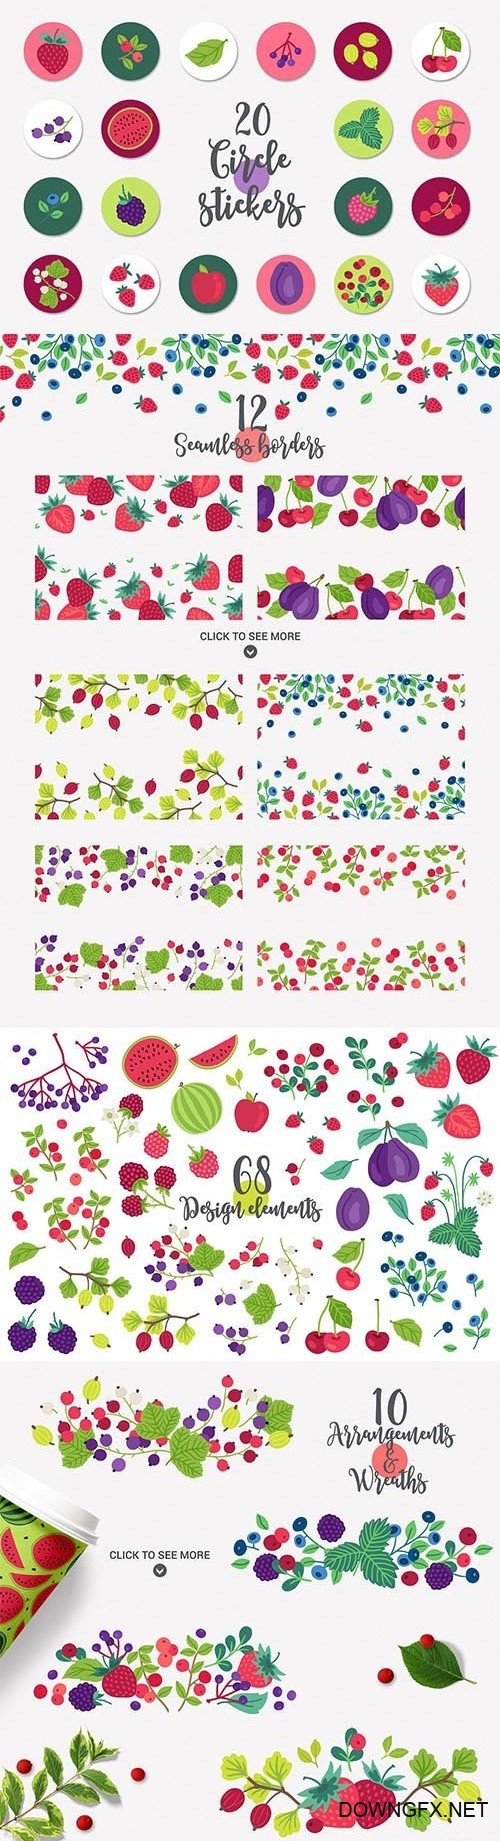 CreativeMarket - Juicy Berries Kit 2767403